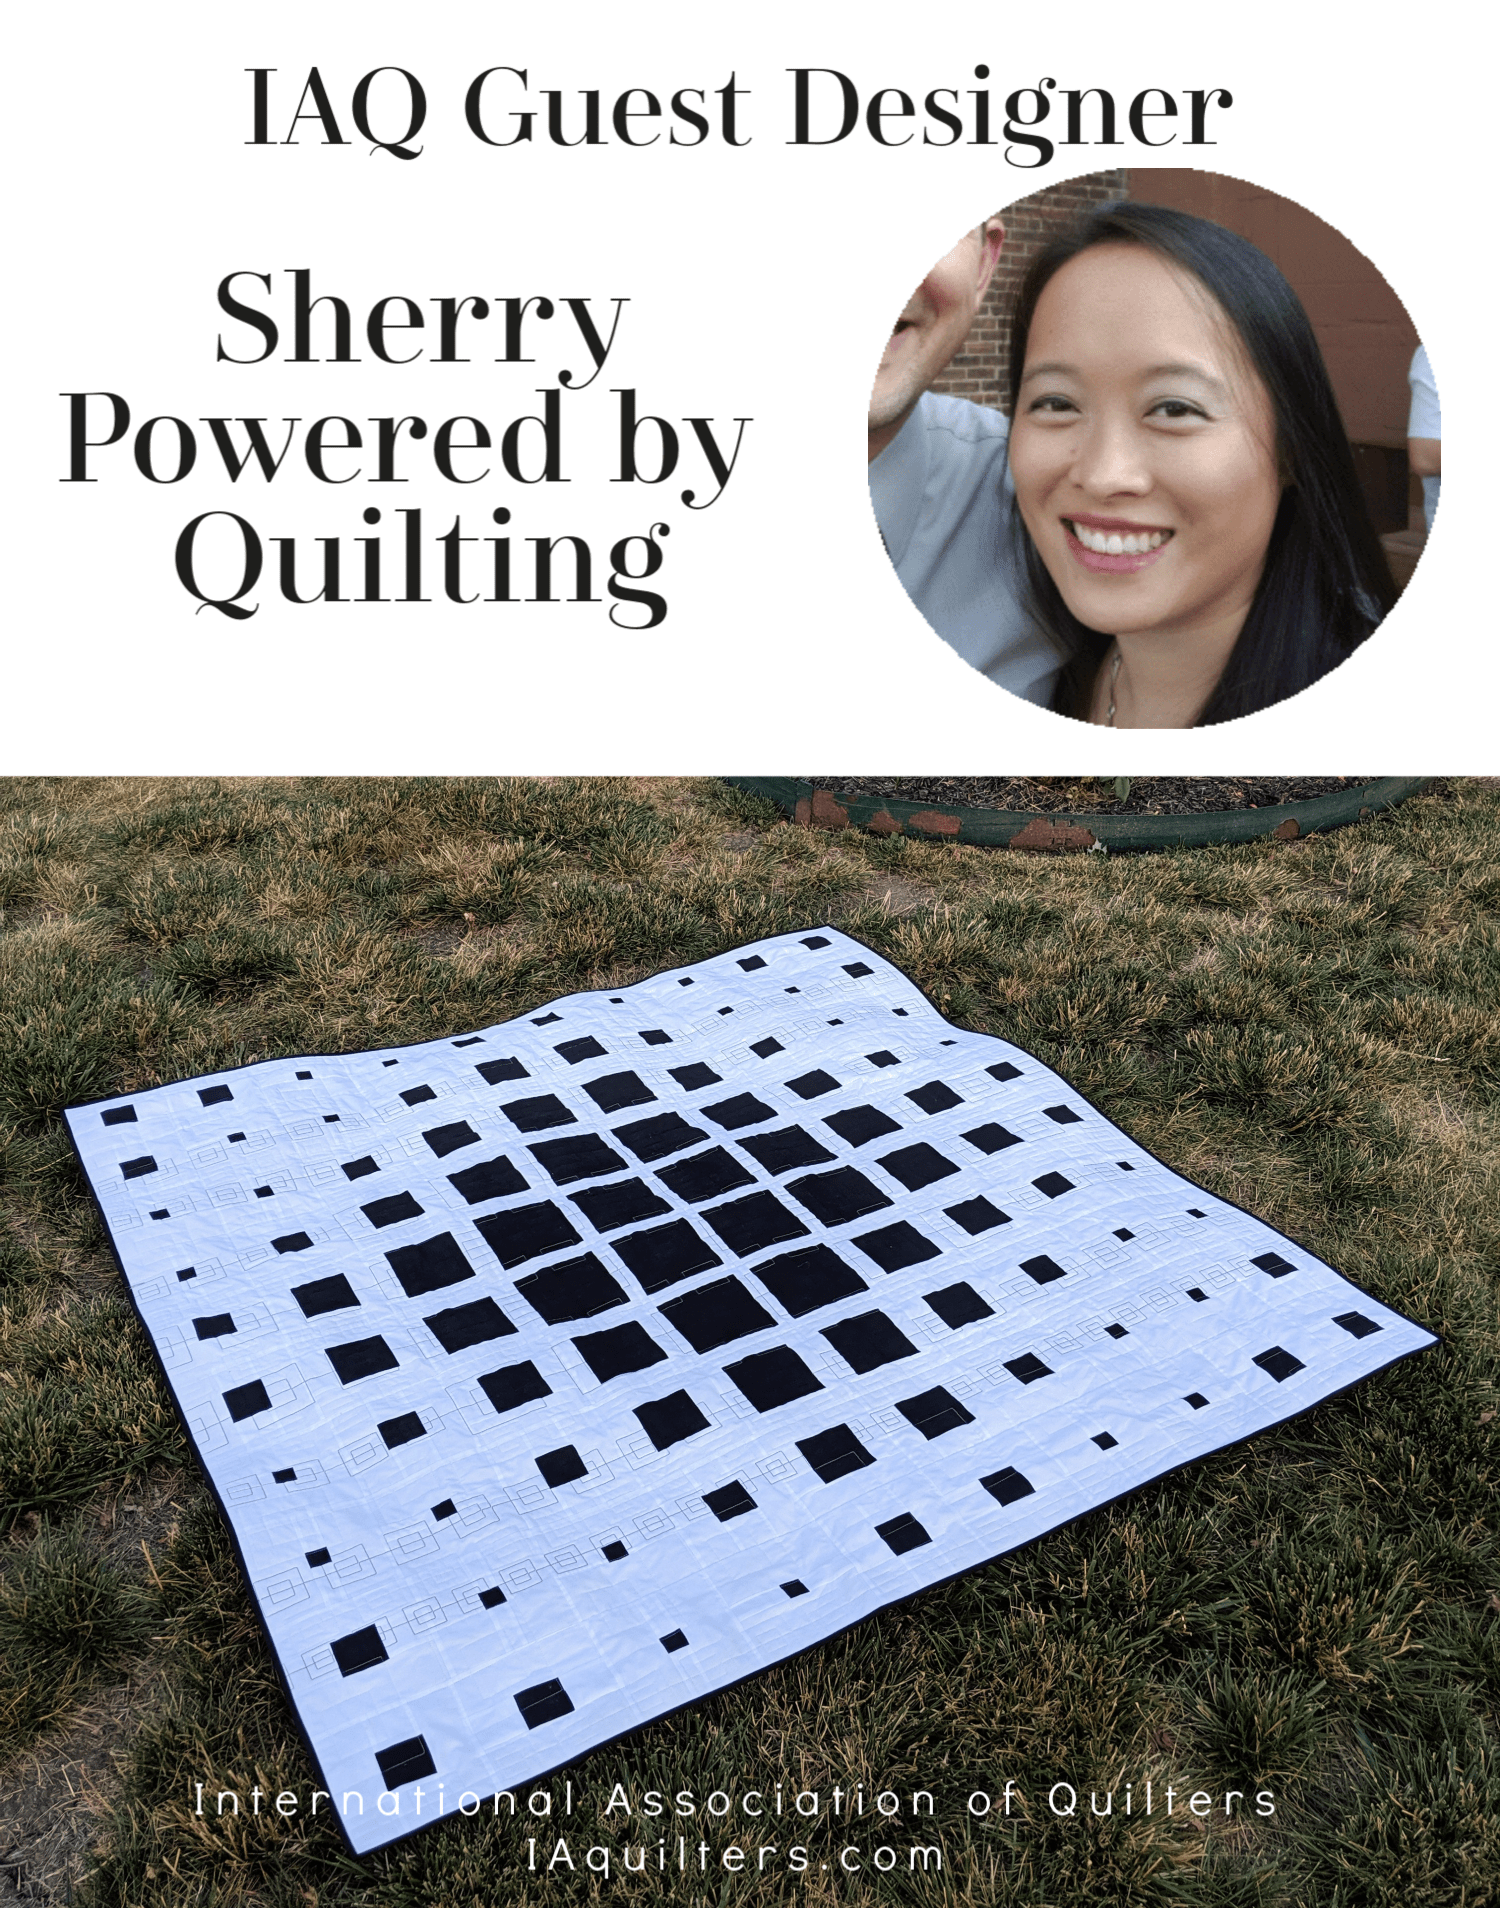 Guest Designer -Sherry of Powered by Quilting